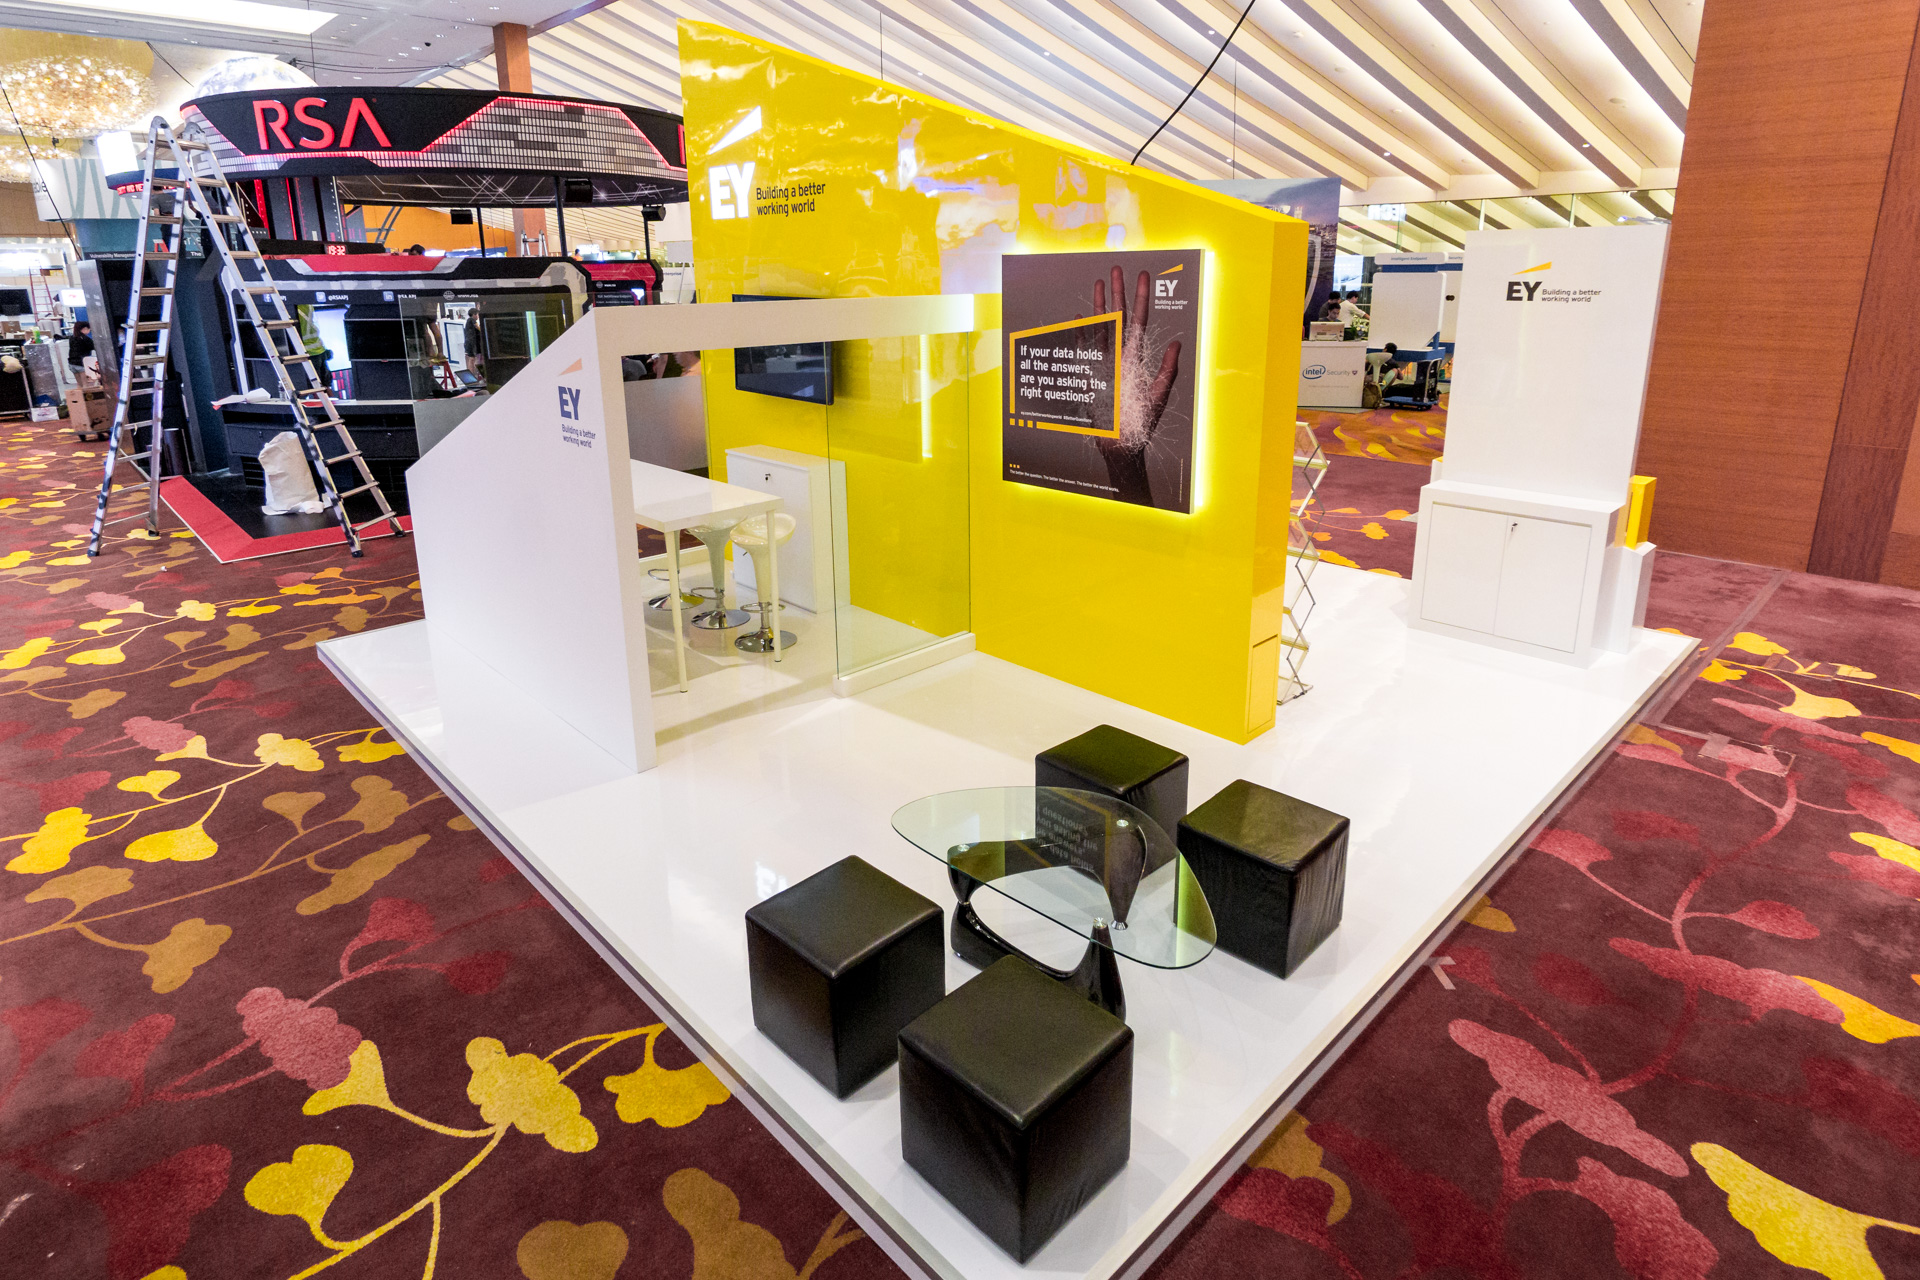 Marketing Exhibition Stand List : Ey exhibition booth punktlandung events exhibitions